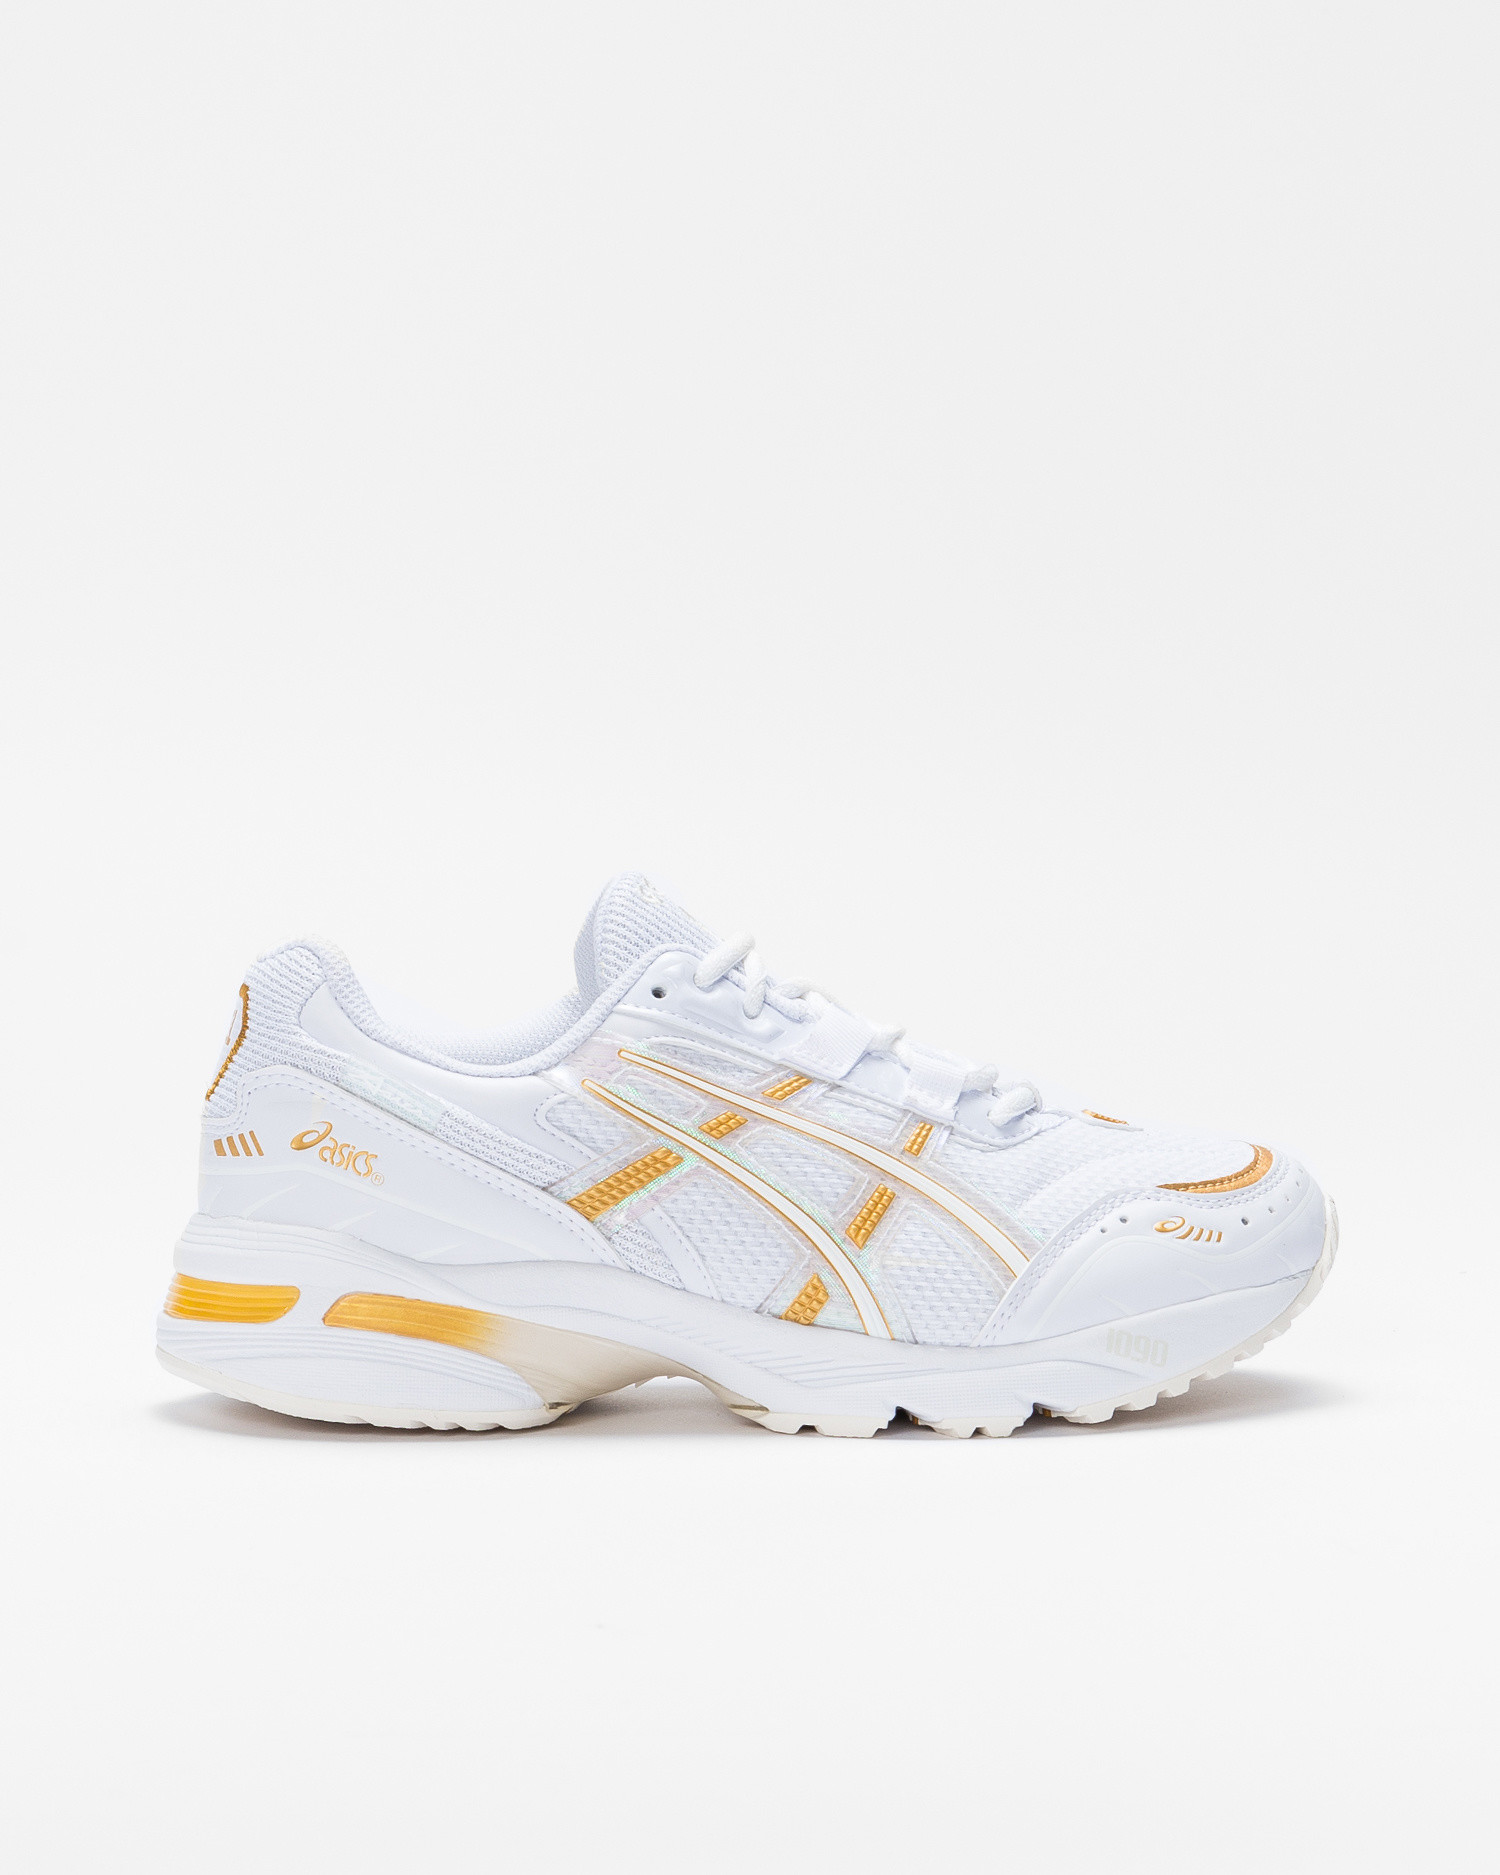 Asics Gel-1090 White Yellow